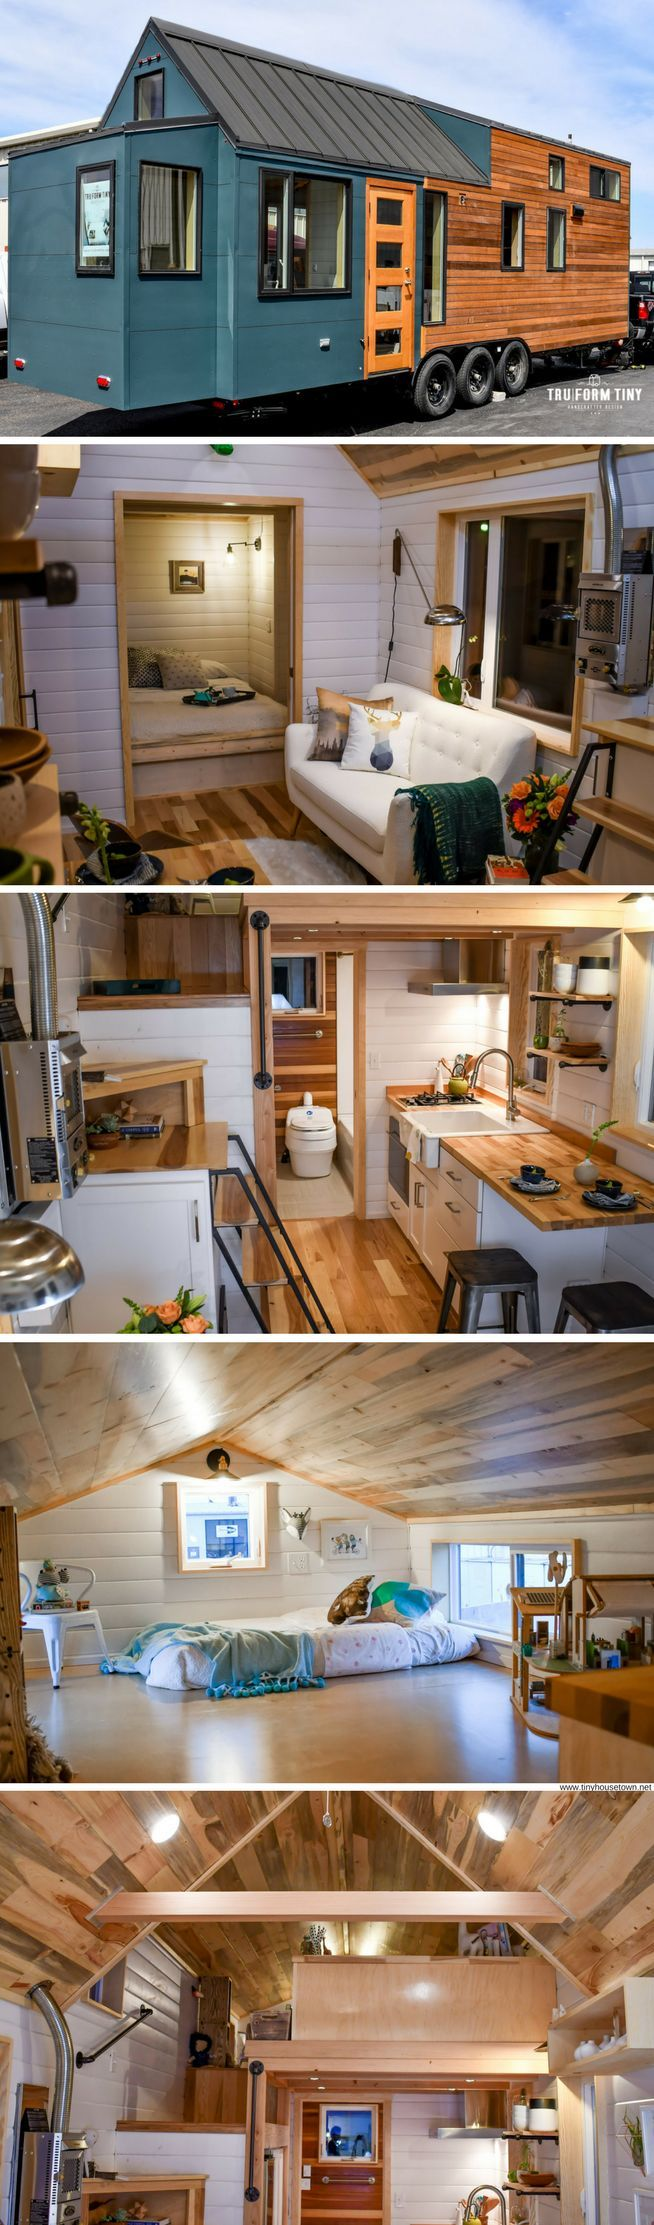 Home decorating ideas bathroom the payette  two bedroom tiny with an upstairs desk also best house images on pinterest in rh